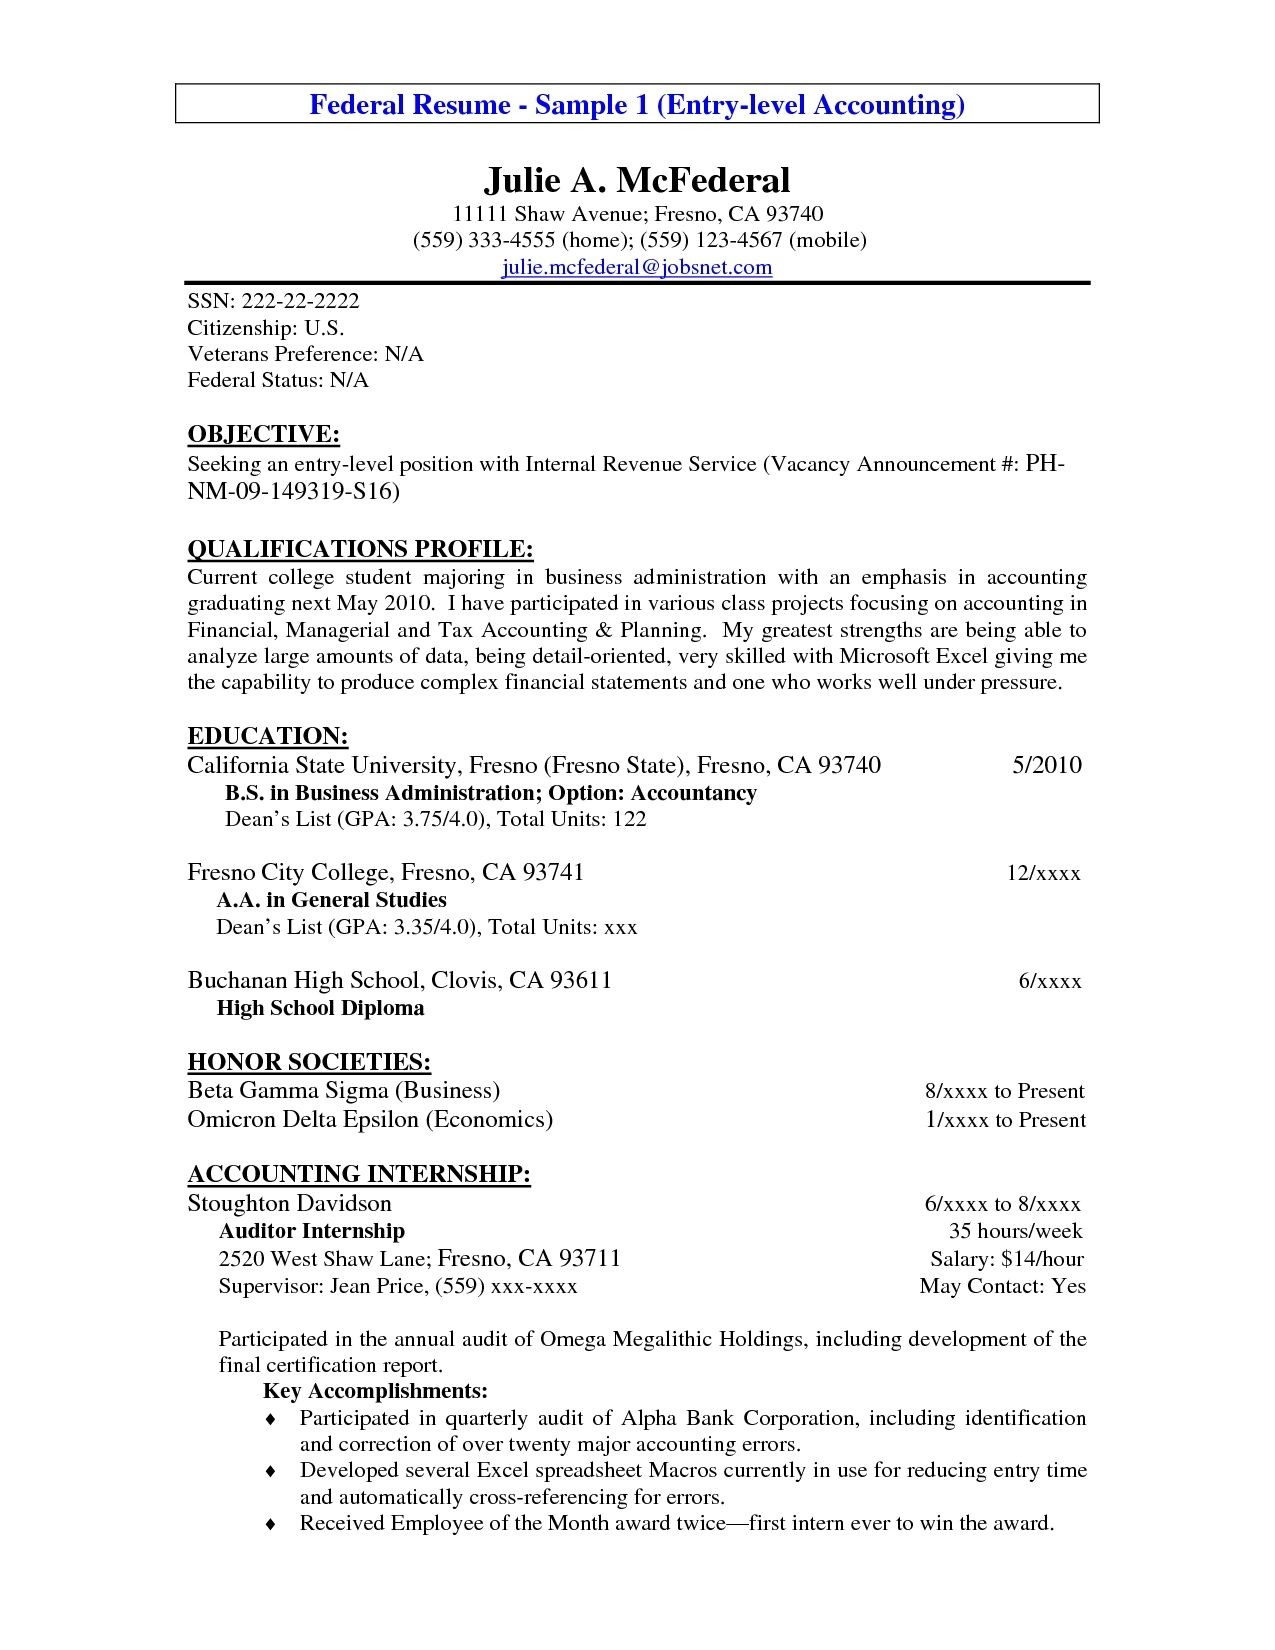 Resume for Entry Level Electrical Engineer - 19 Entry Level Electrical Engineer Resume